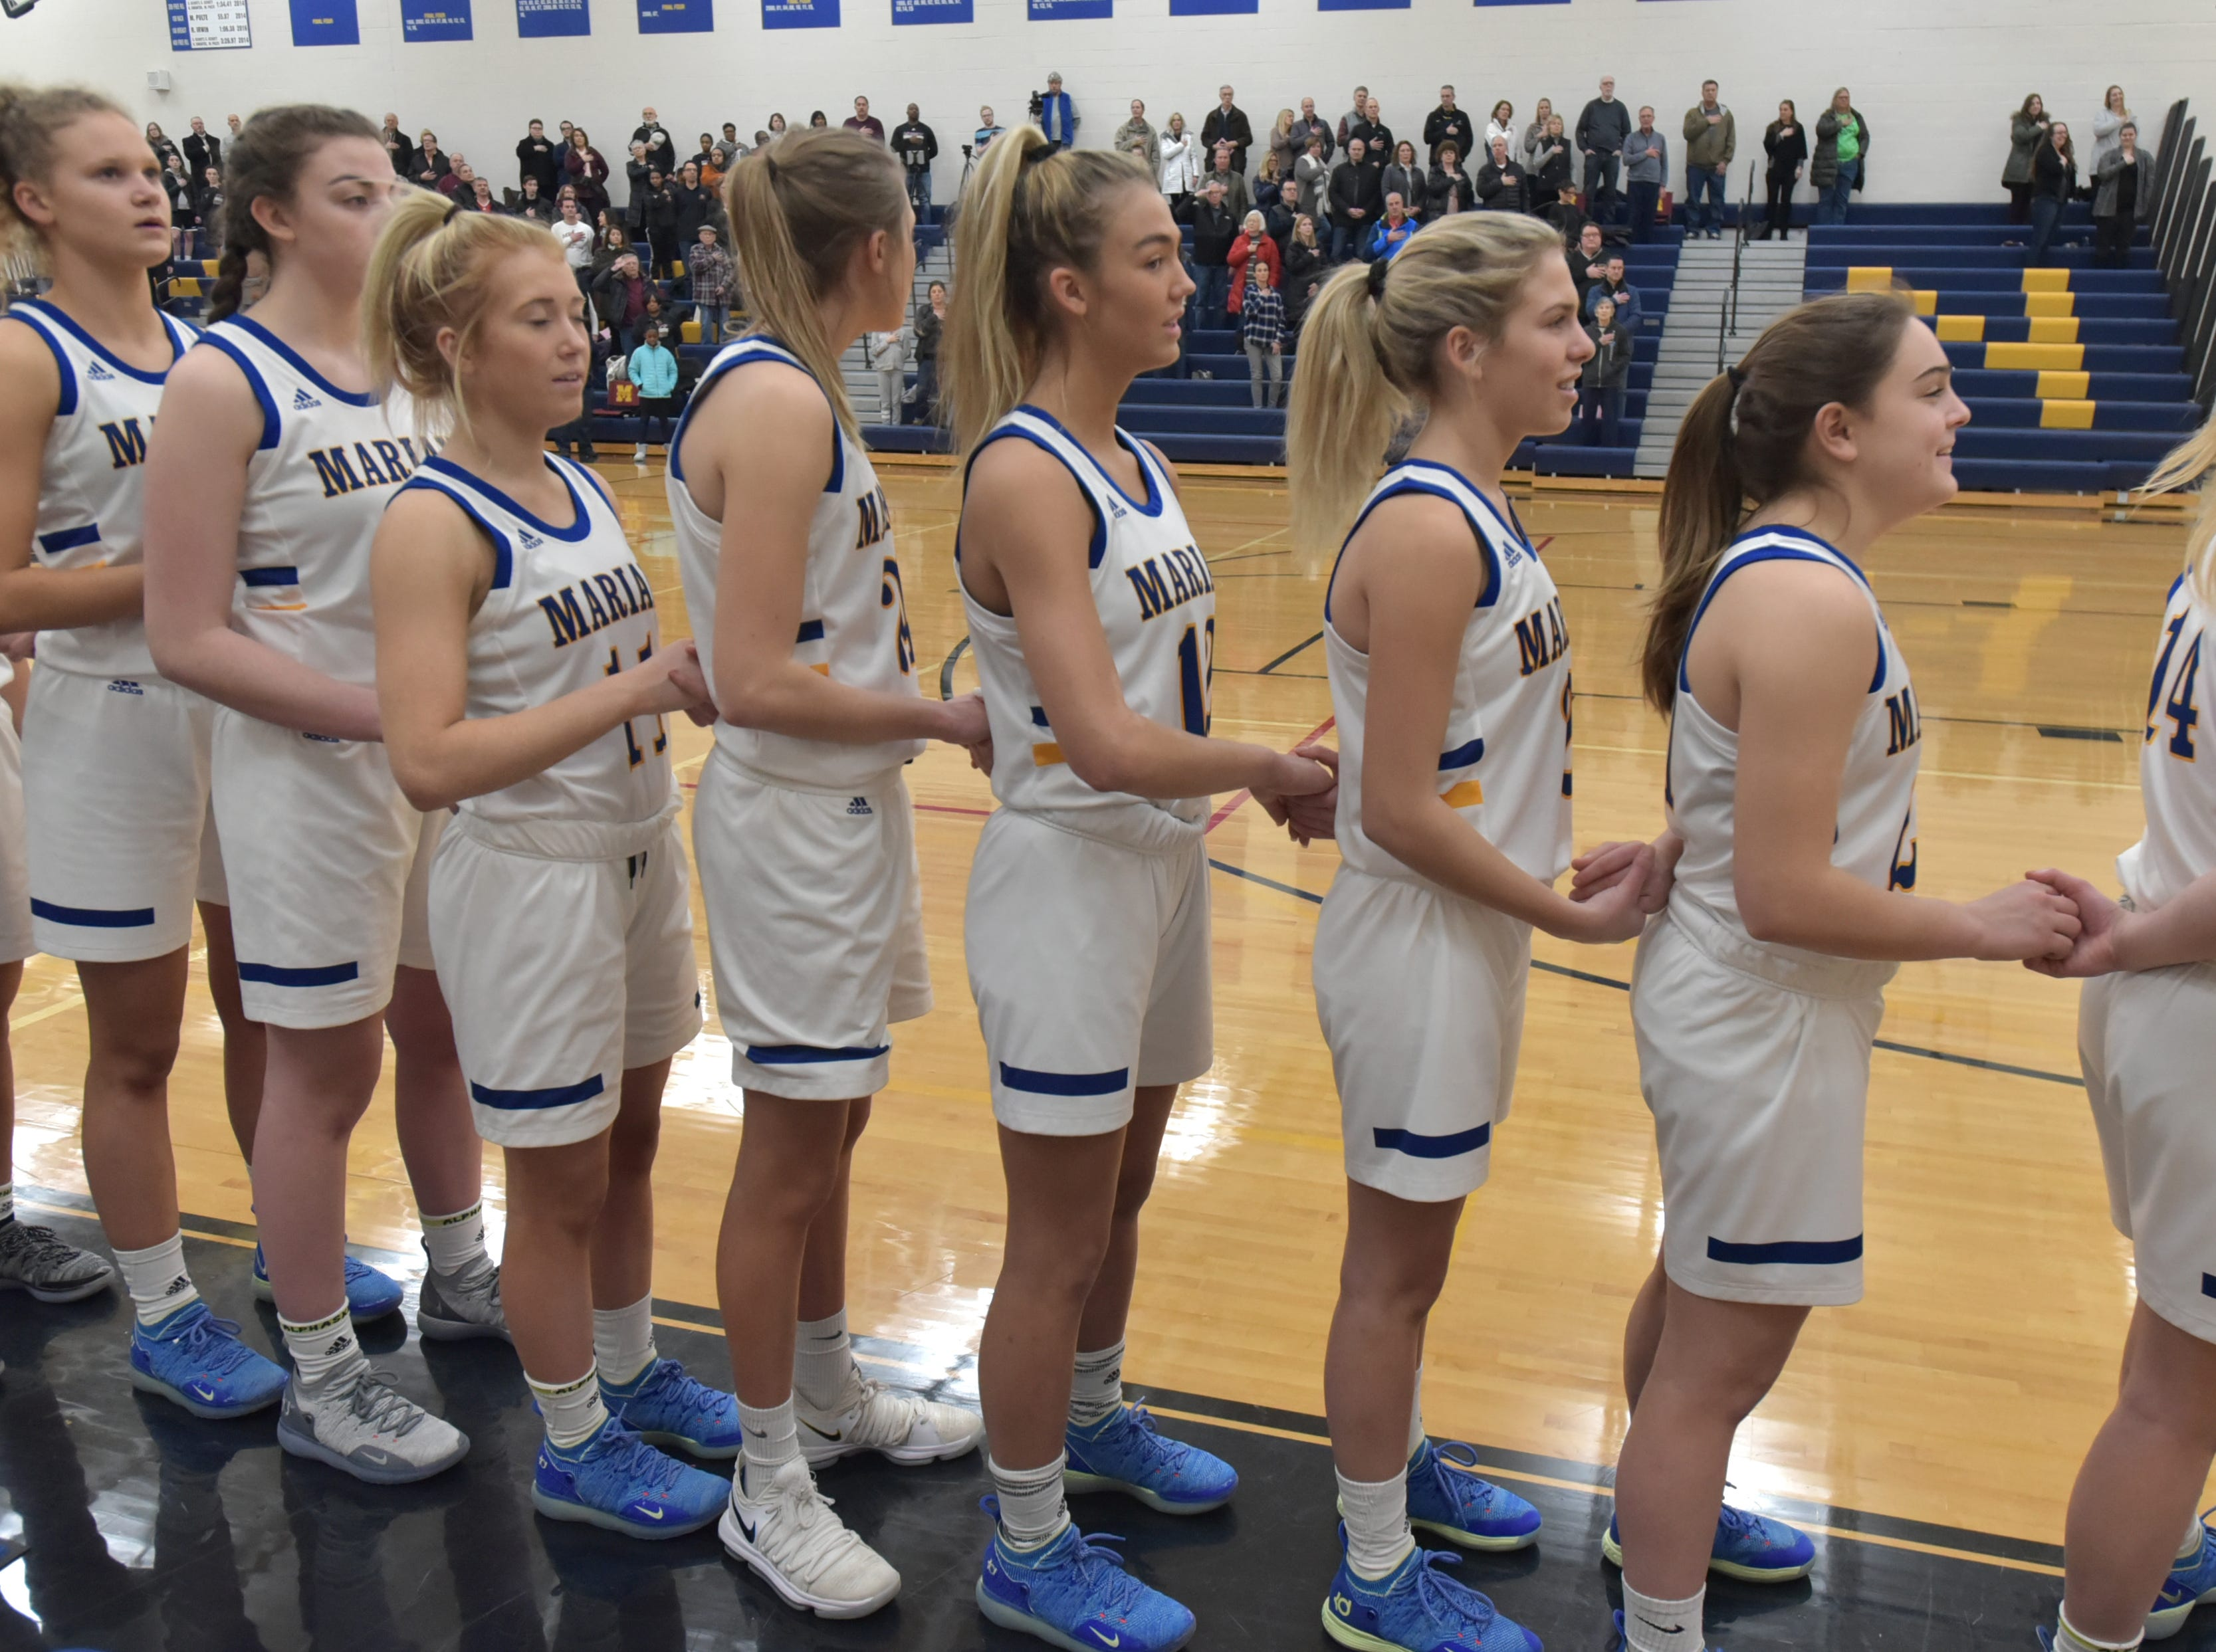 The Marian High varisty girls team lines up for the playing of the National Anthem.